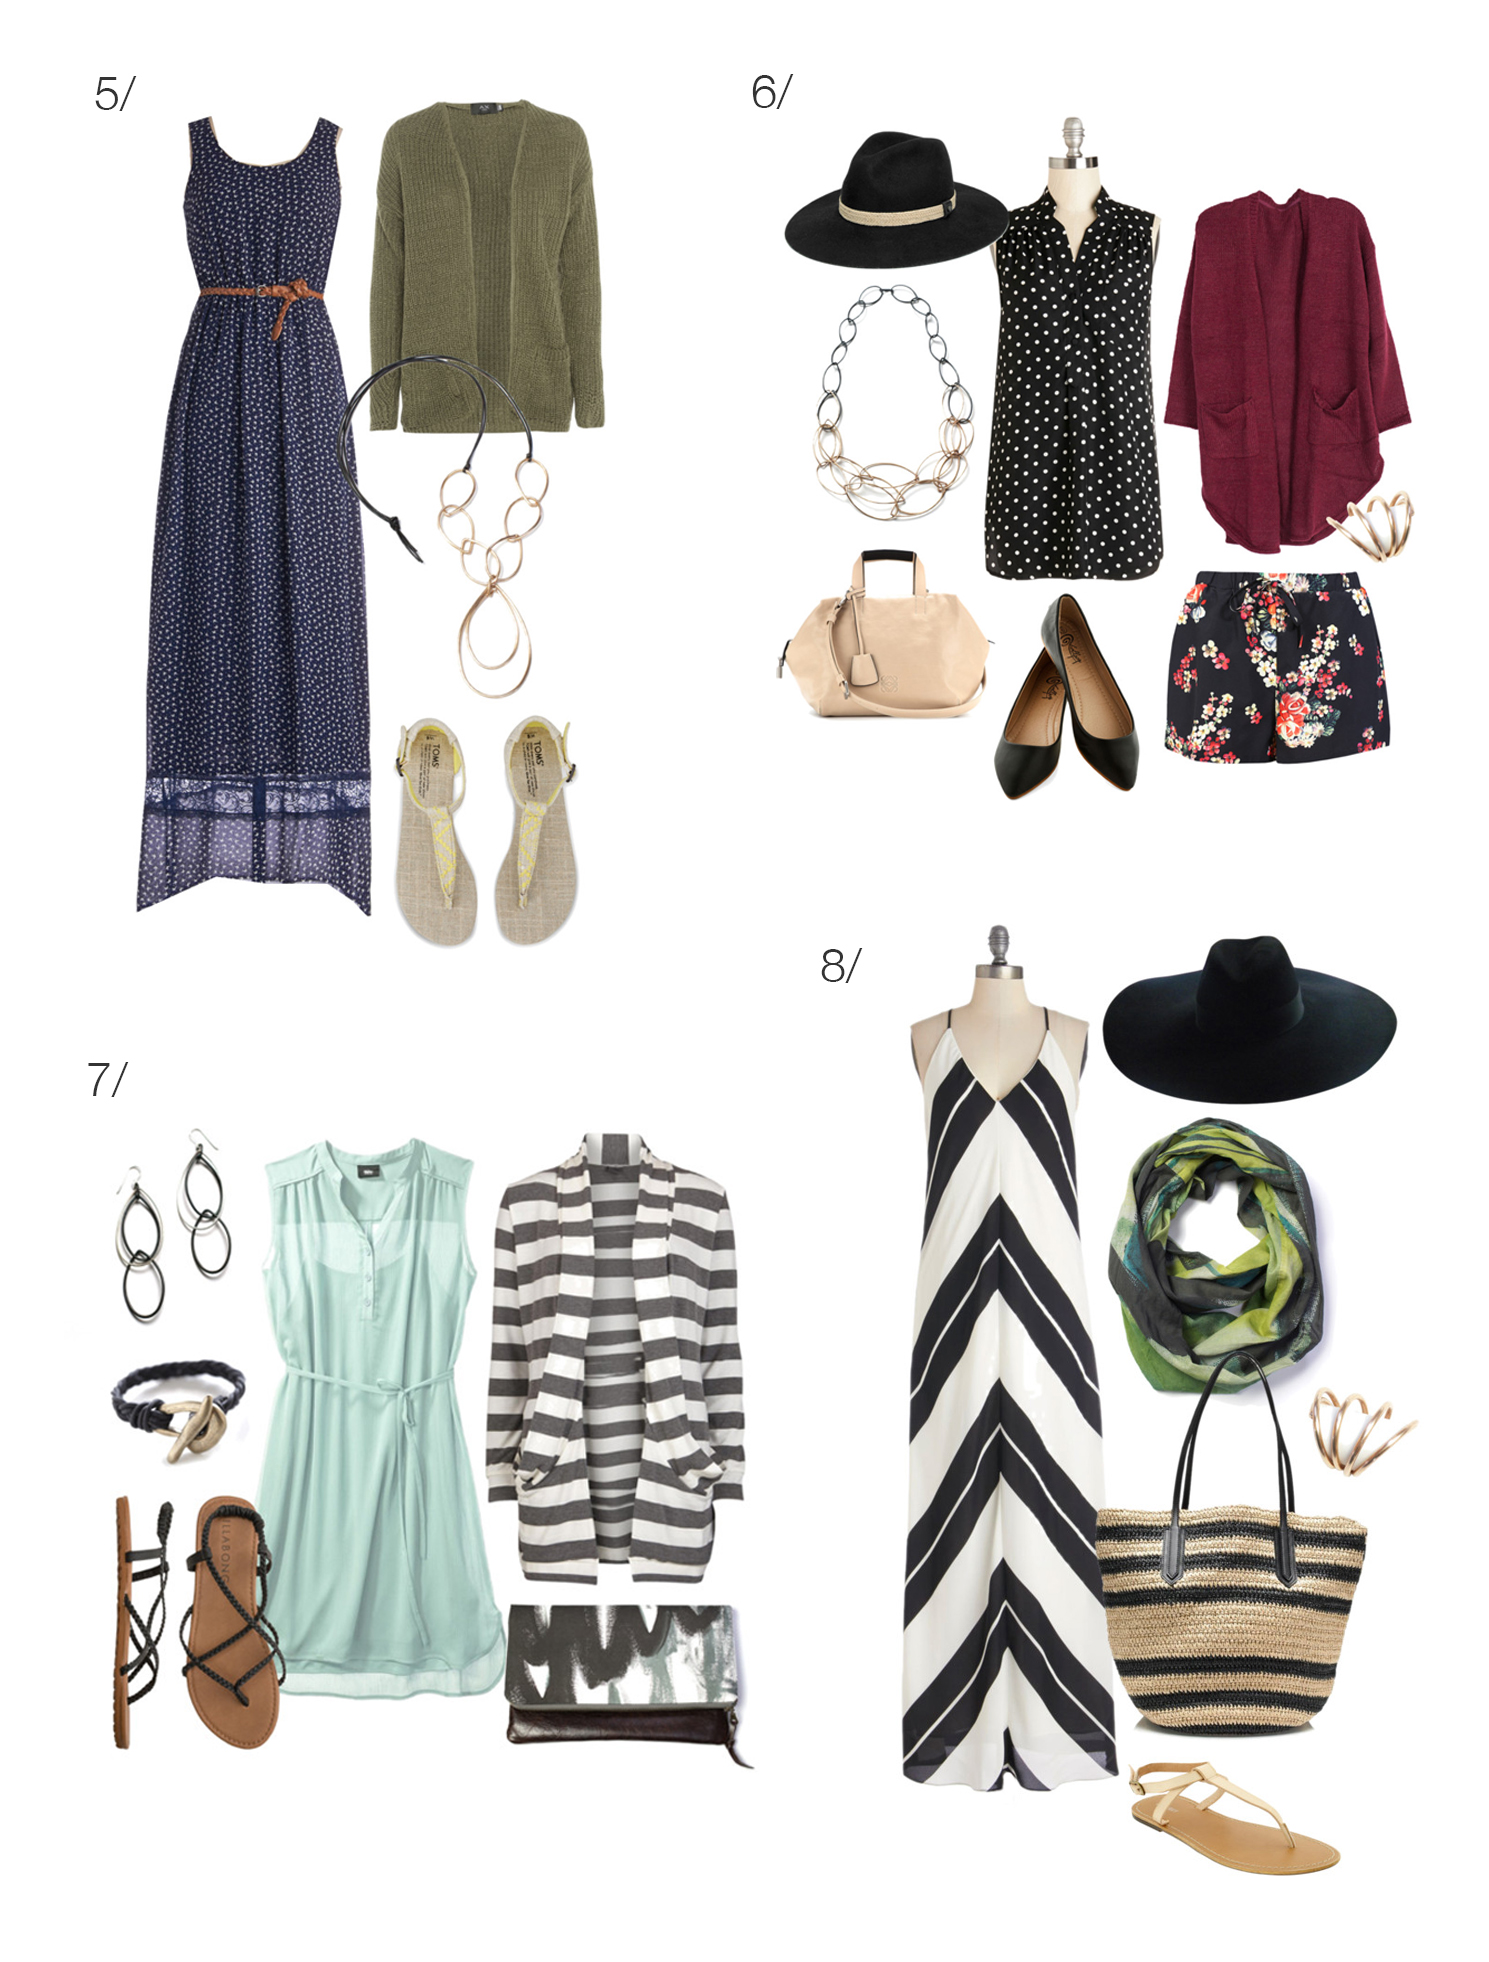 summer style: what to wear to a summer picnic via megan auman - click for outfit details